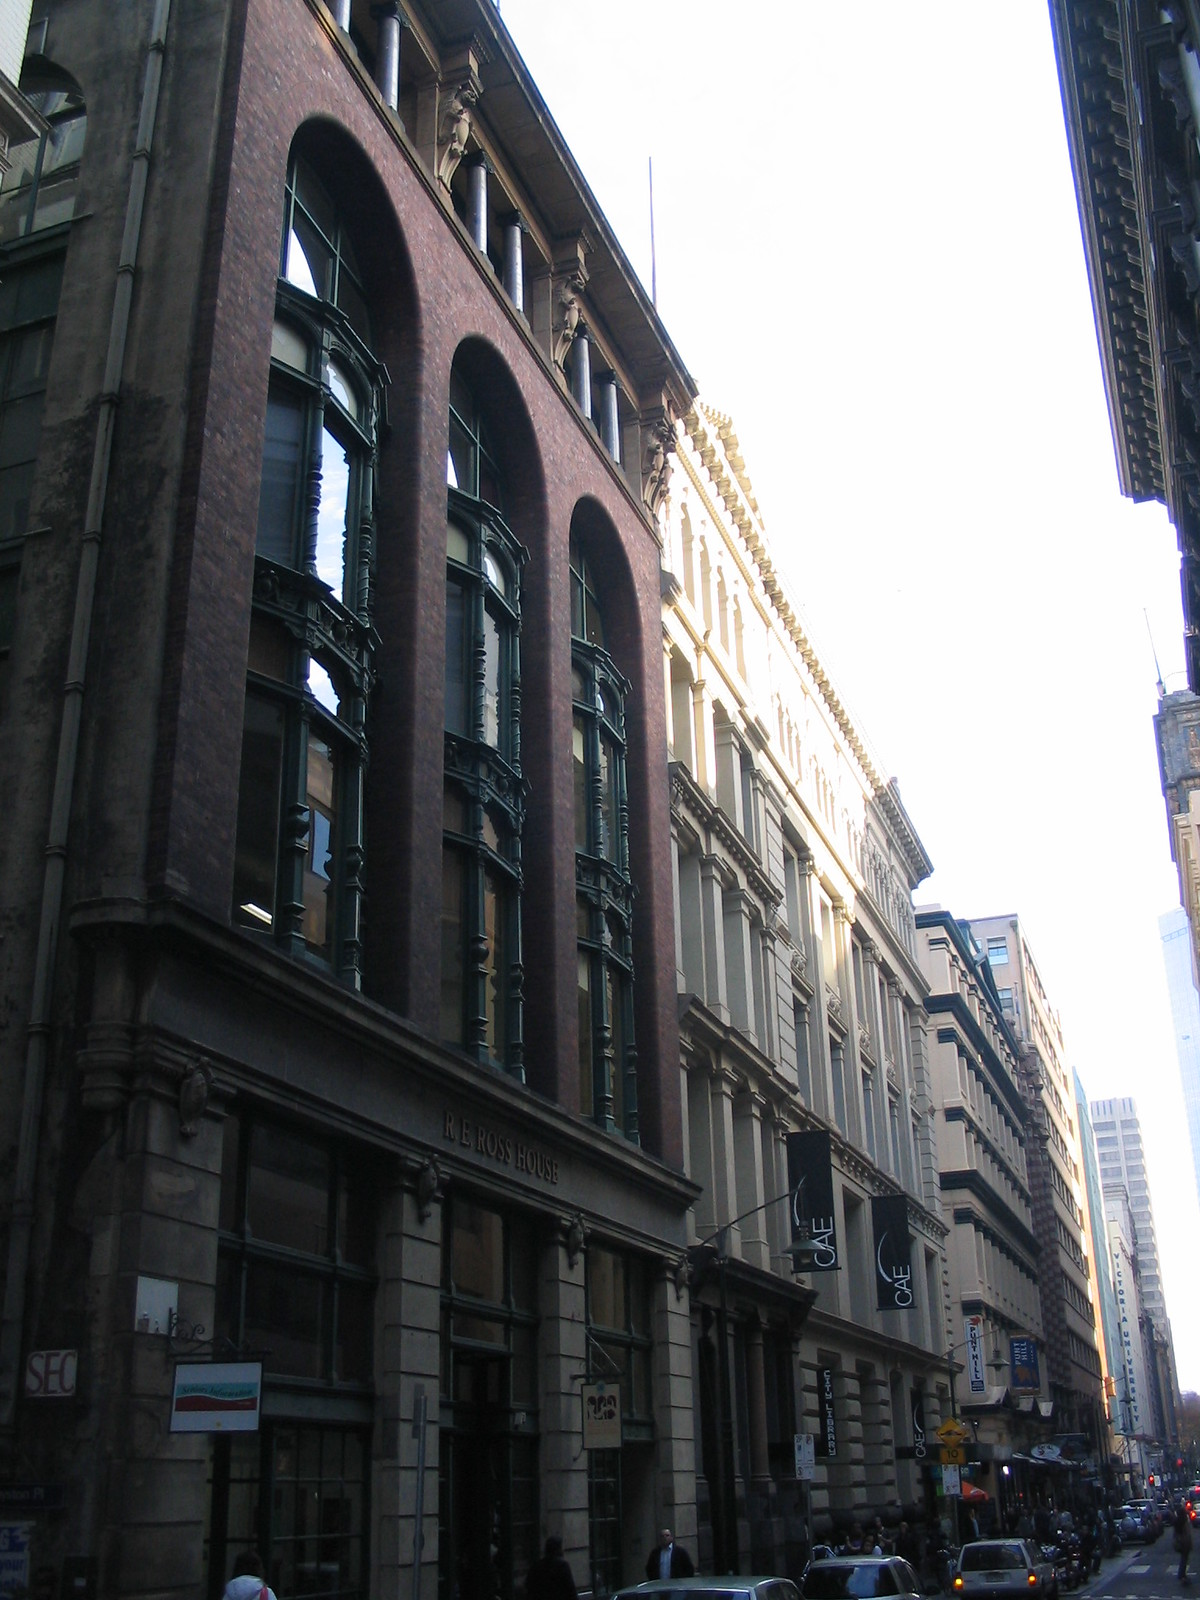 Flinders Lane, Ross House in the foreground (May 2006)